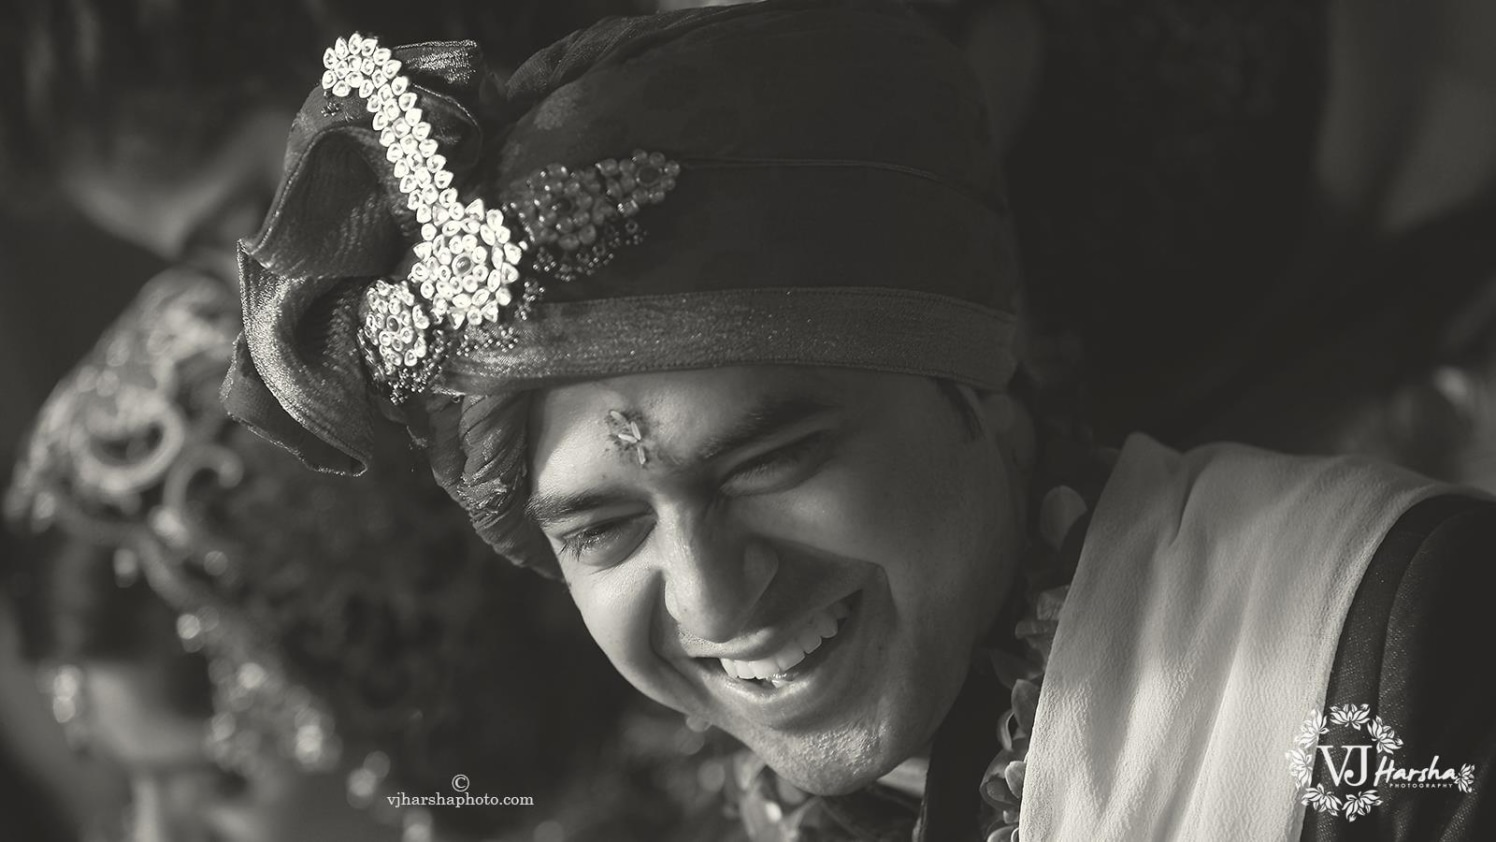 Candid Photo Of the Smiling Groom by Vjharsha Photography Wedding-photography | Weddings Photos & Ideas